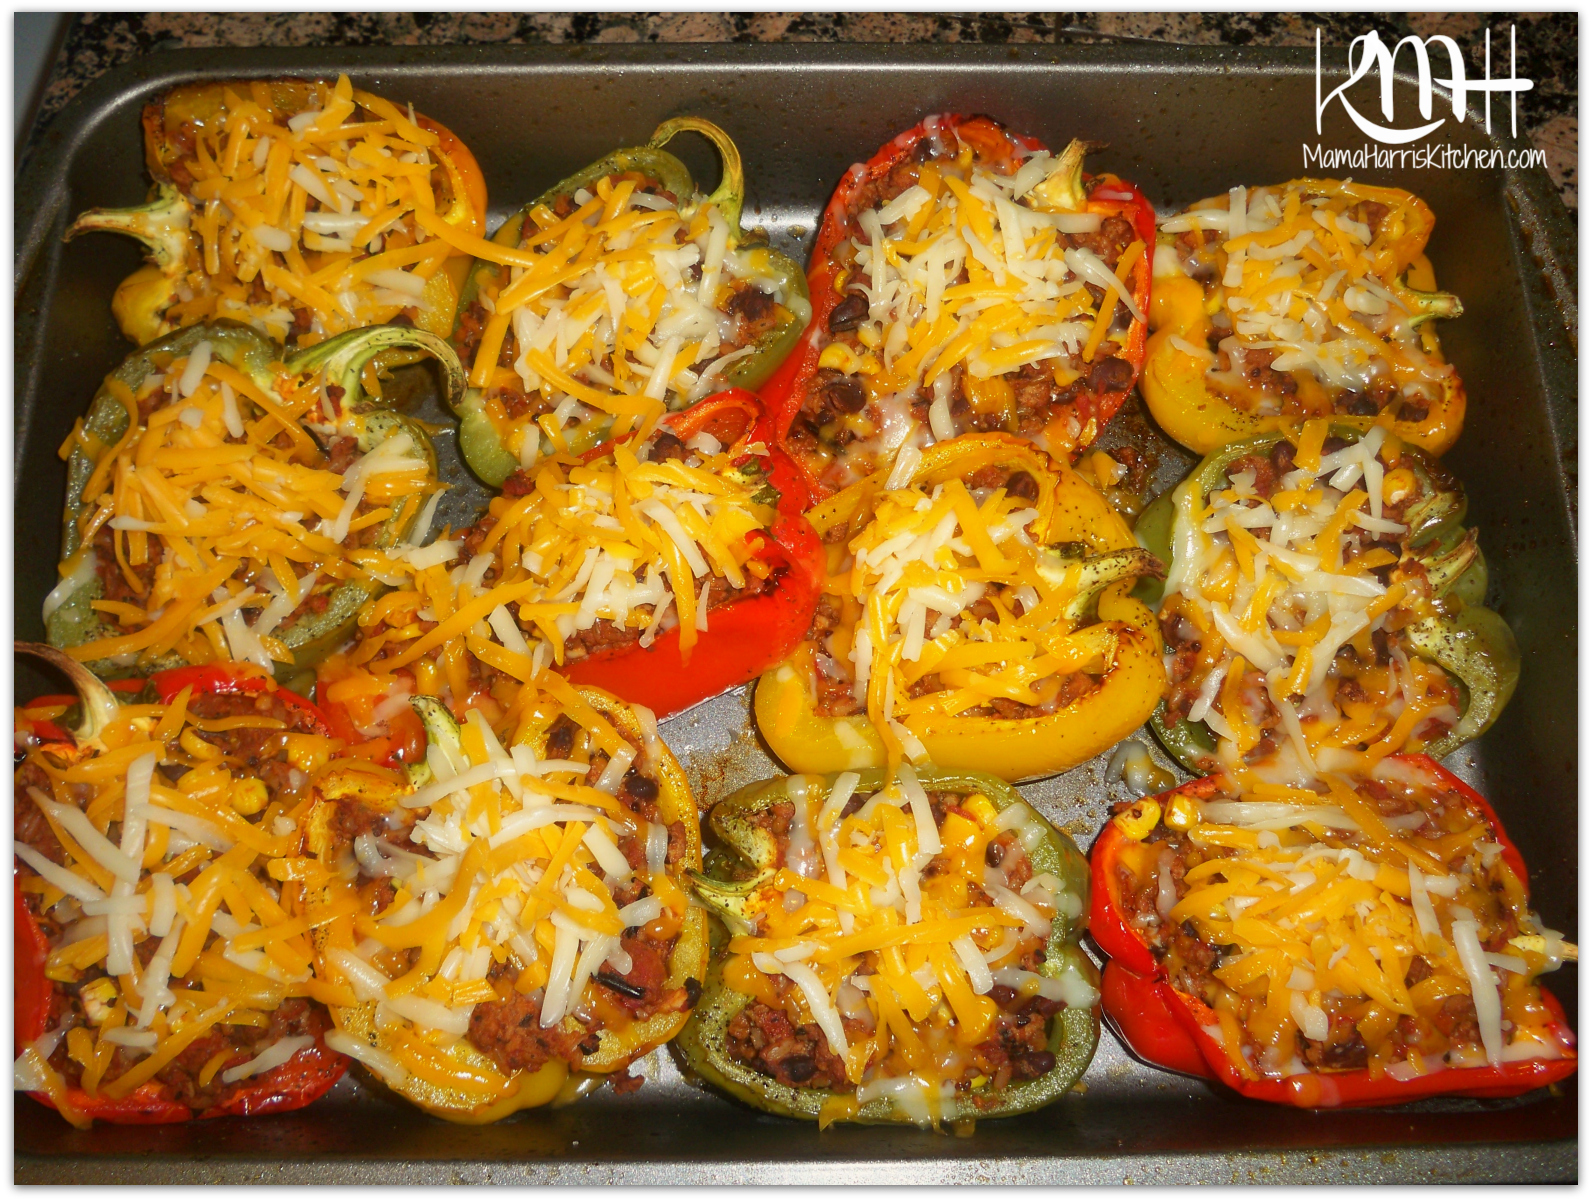 Sprinkle with cheese and place back in oven until cheese has melted ...